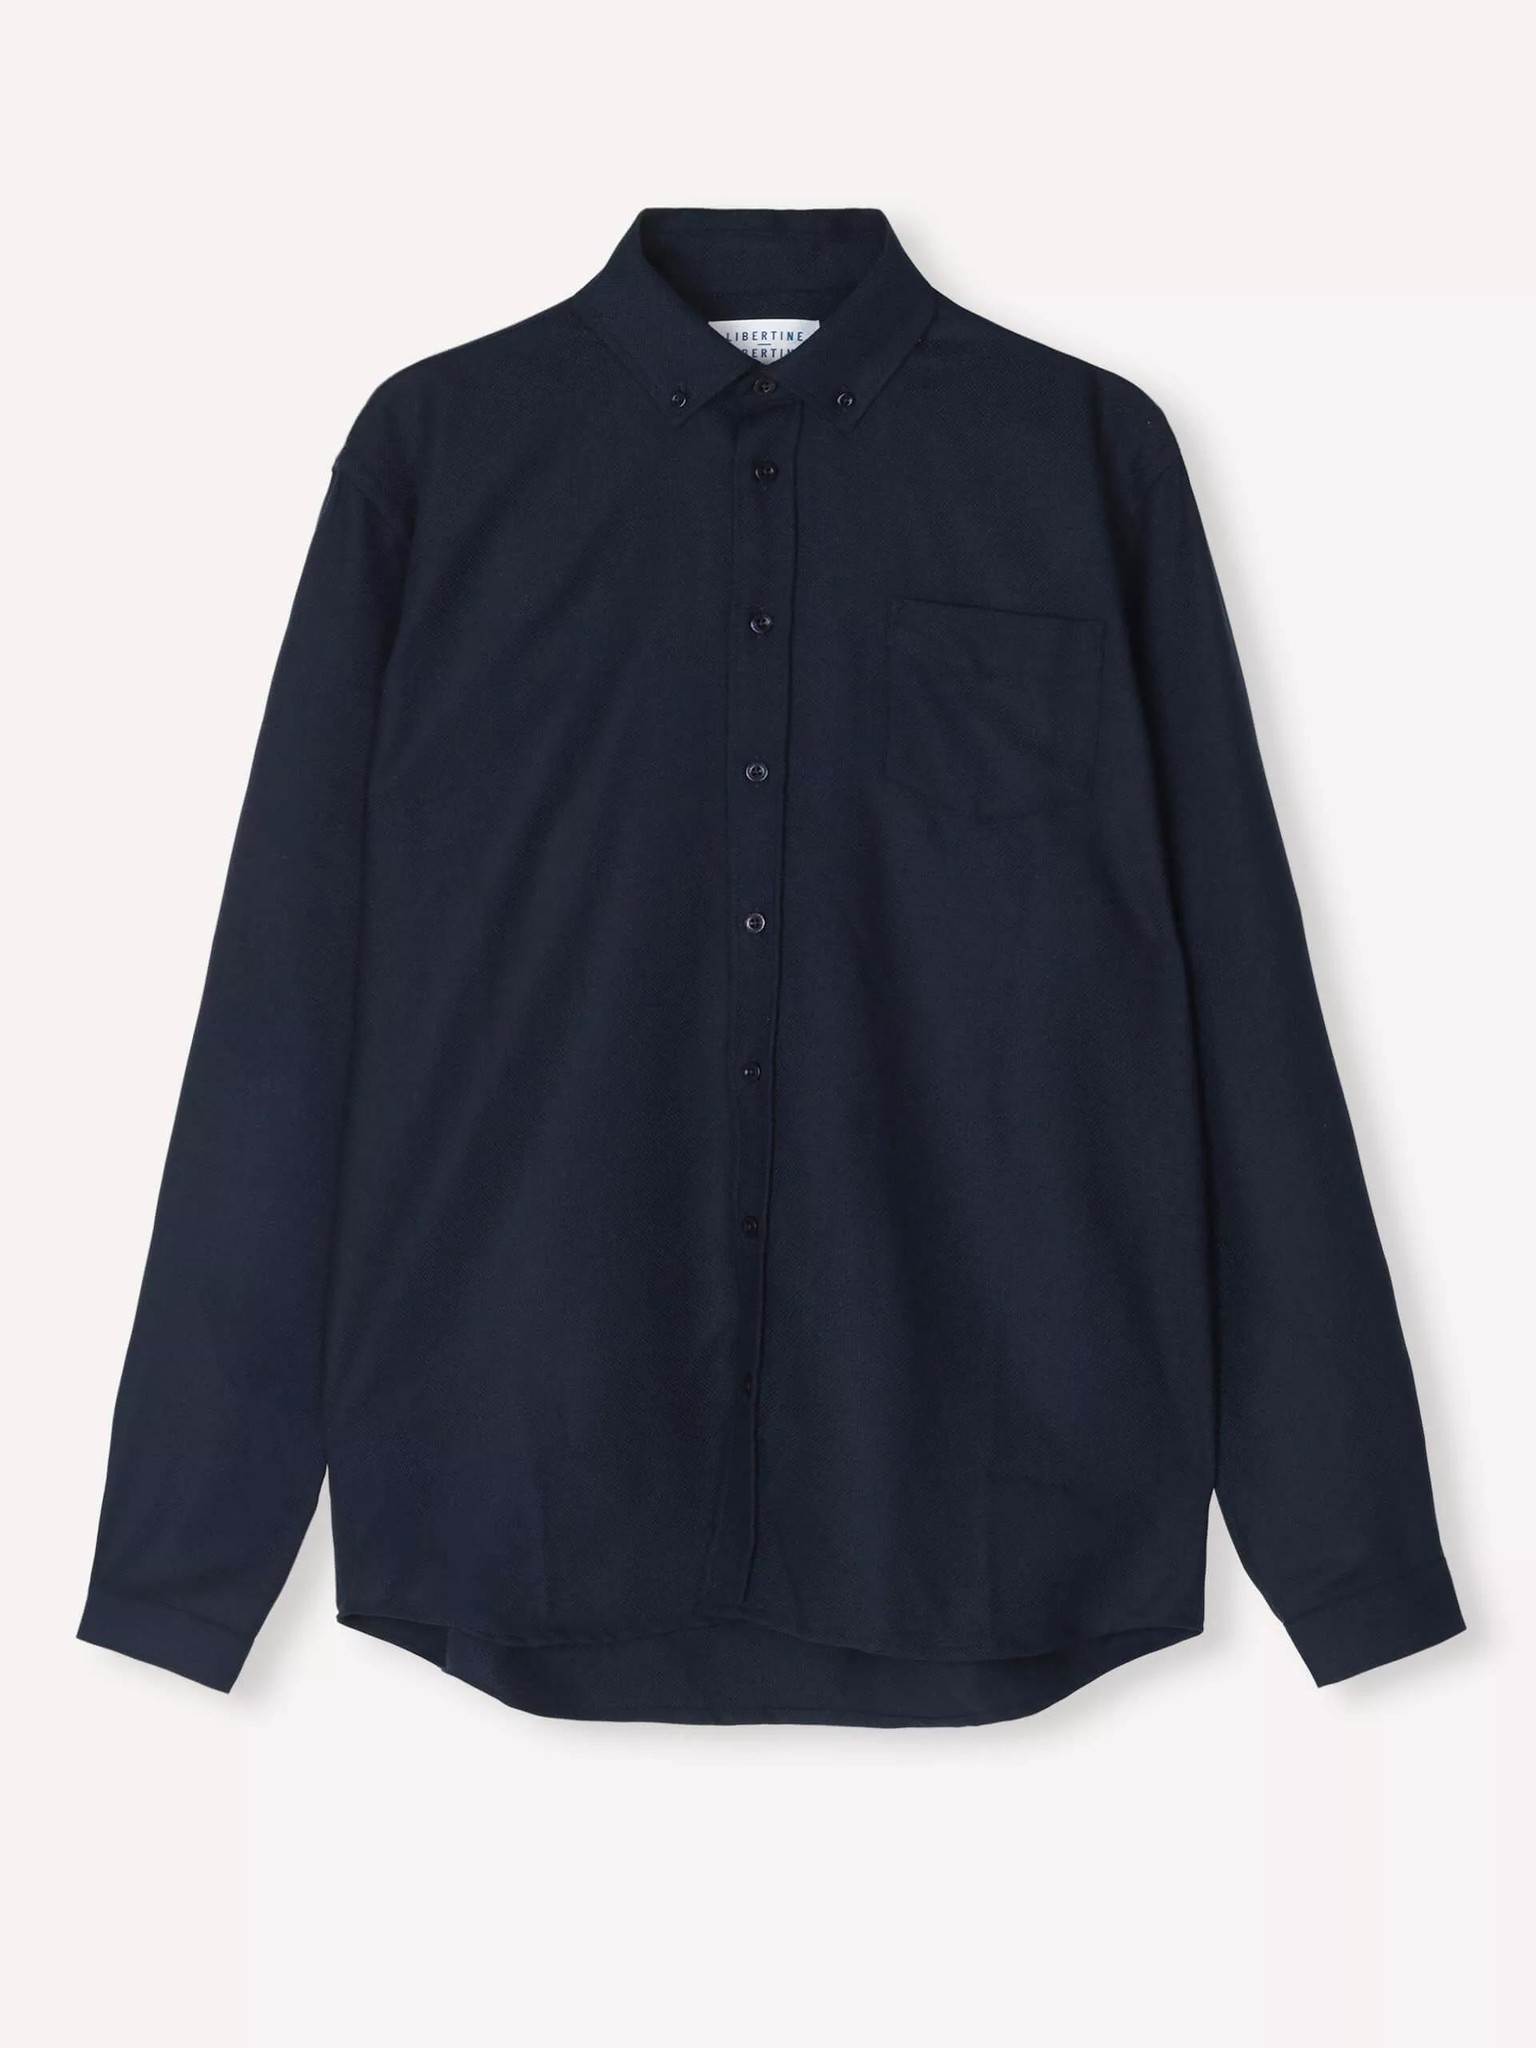 Hunter Dark Navy Shirt 20.04-1